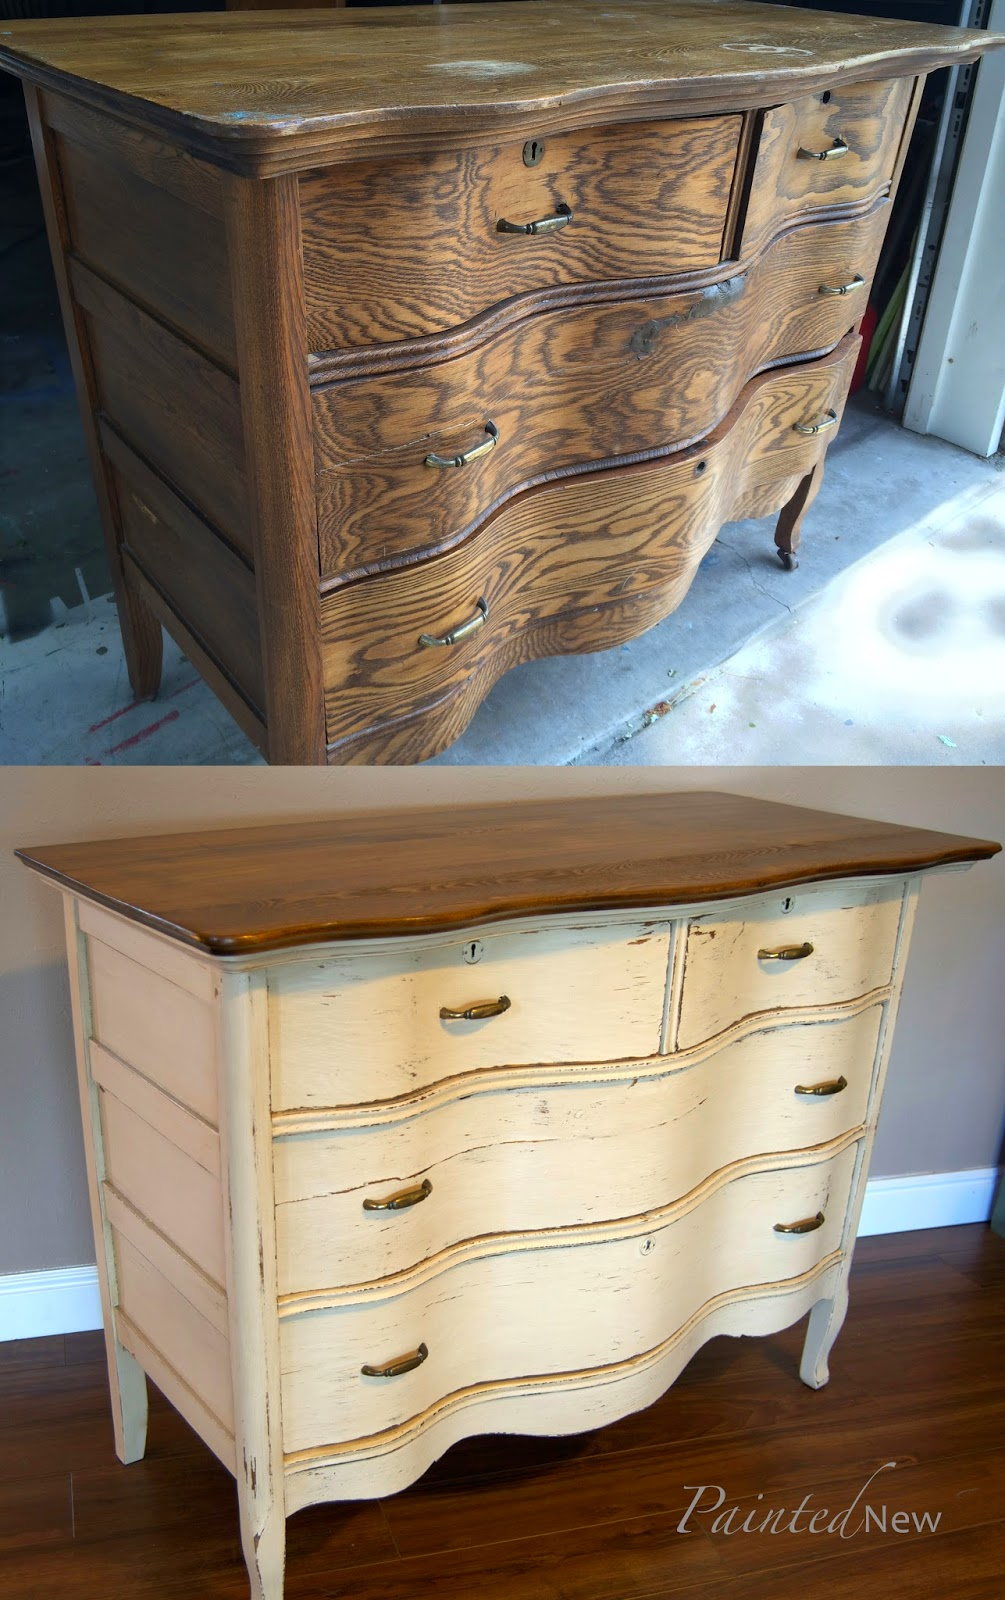 painted new antique shaker dresser. Black Bedroom Furniture Sets. Home Design Ideas